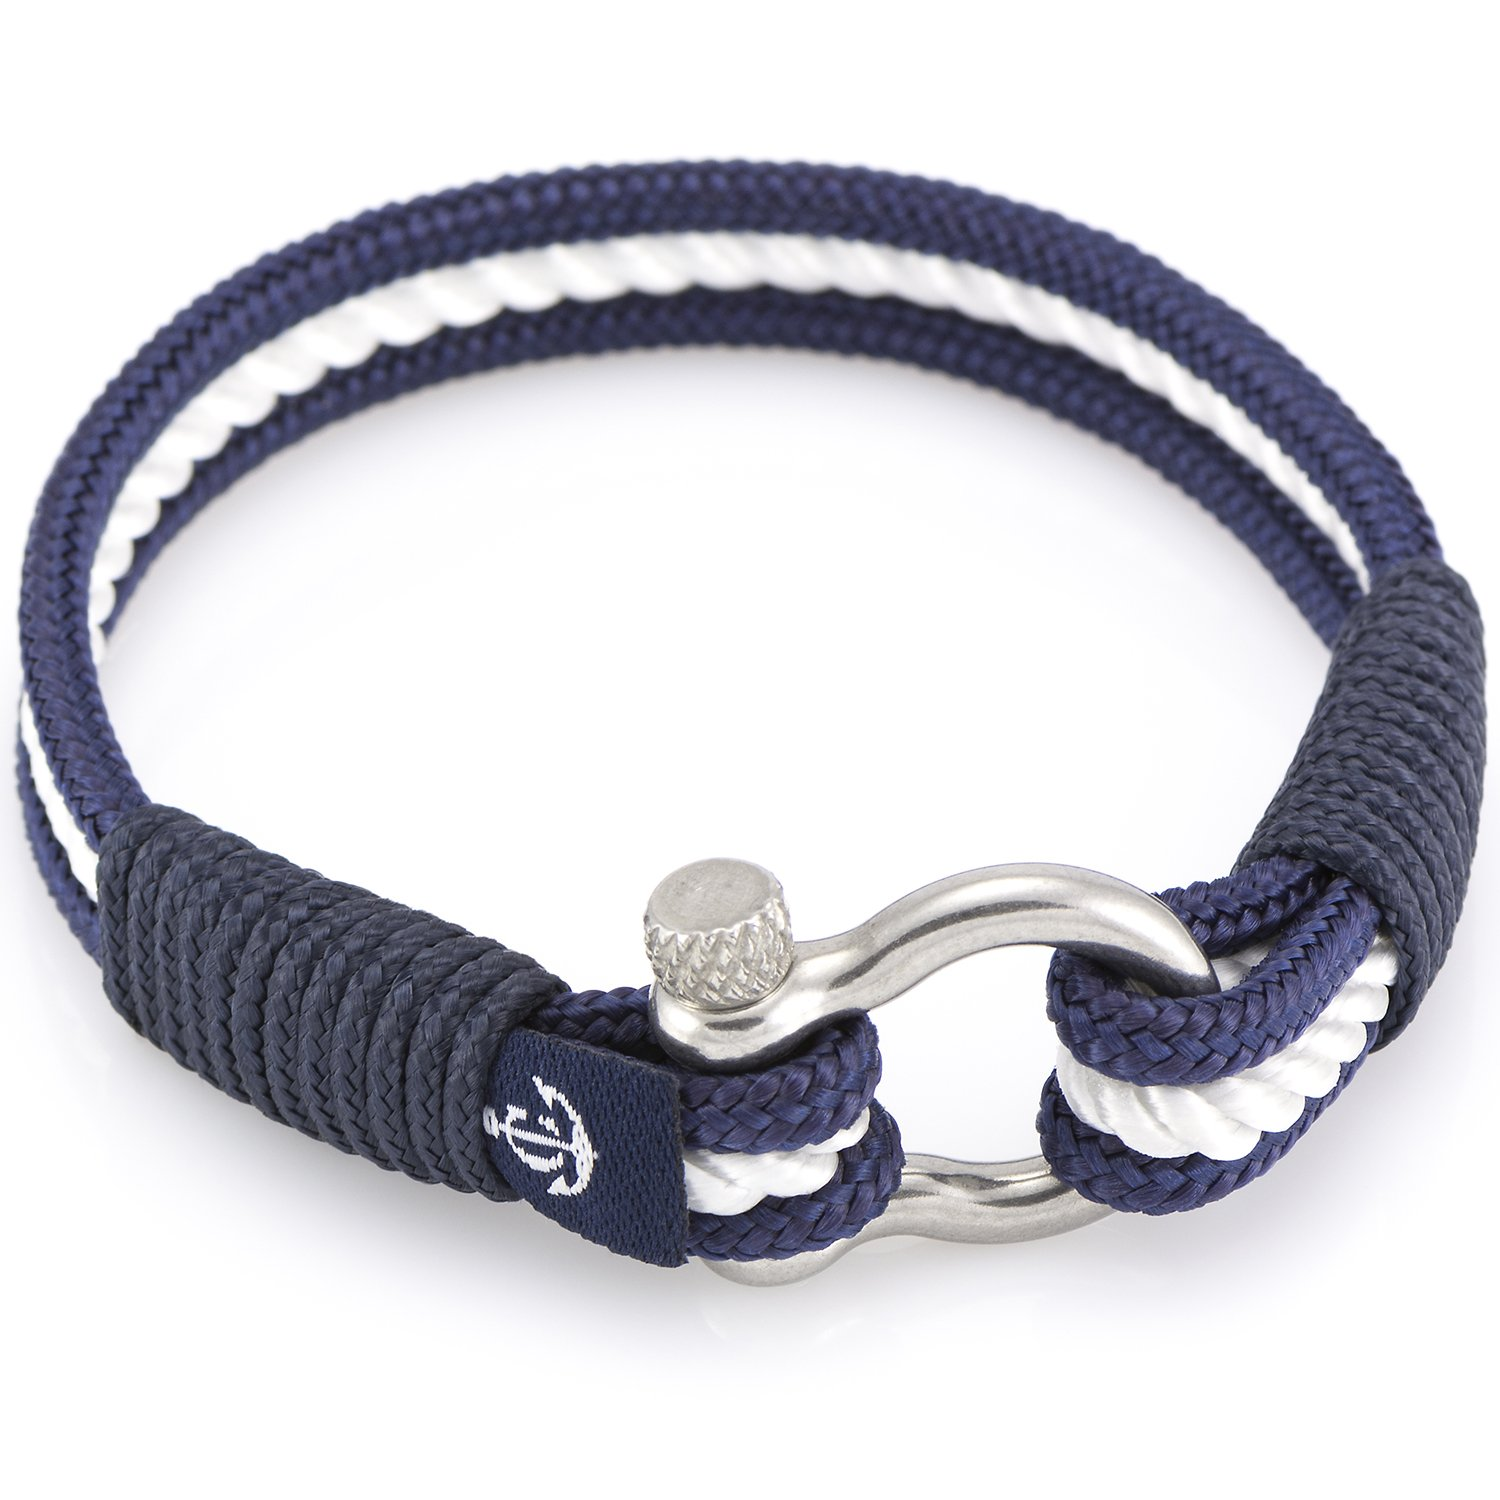 onyx rope il bracelet nautical gkpx listing sailor braceletmens mens fullxfull